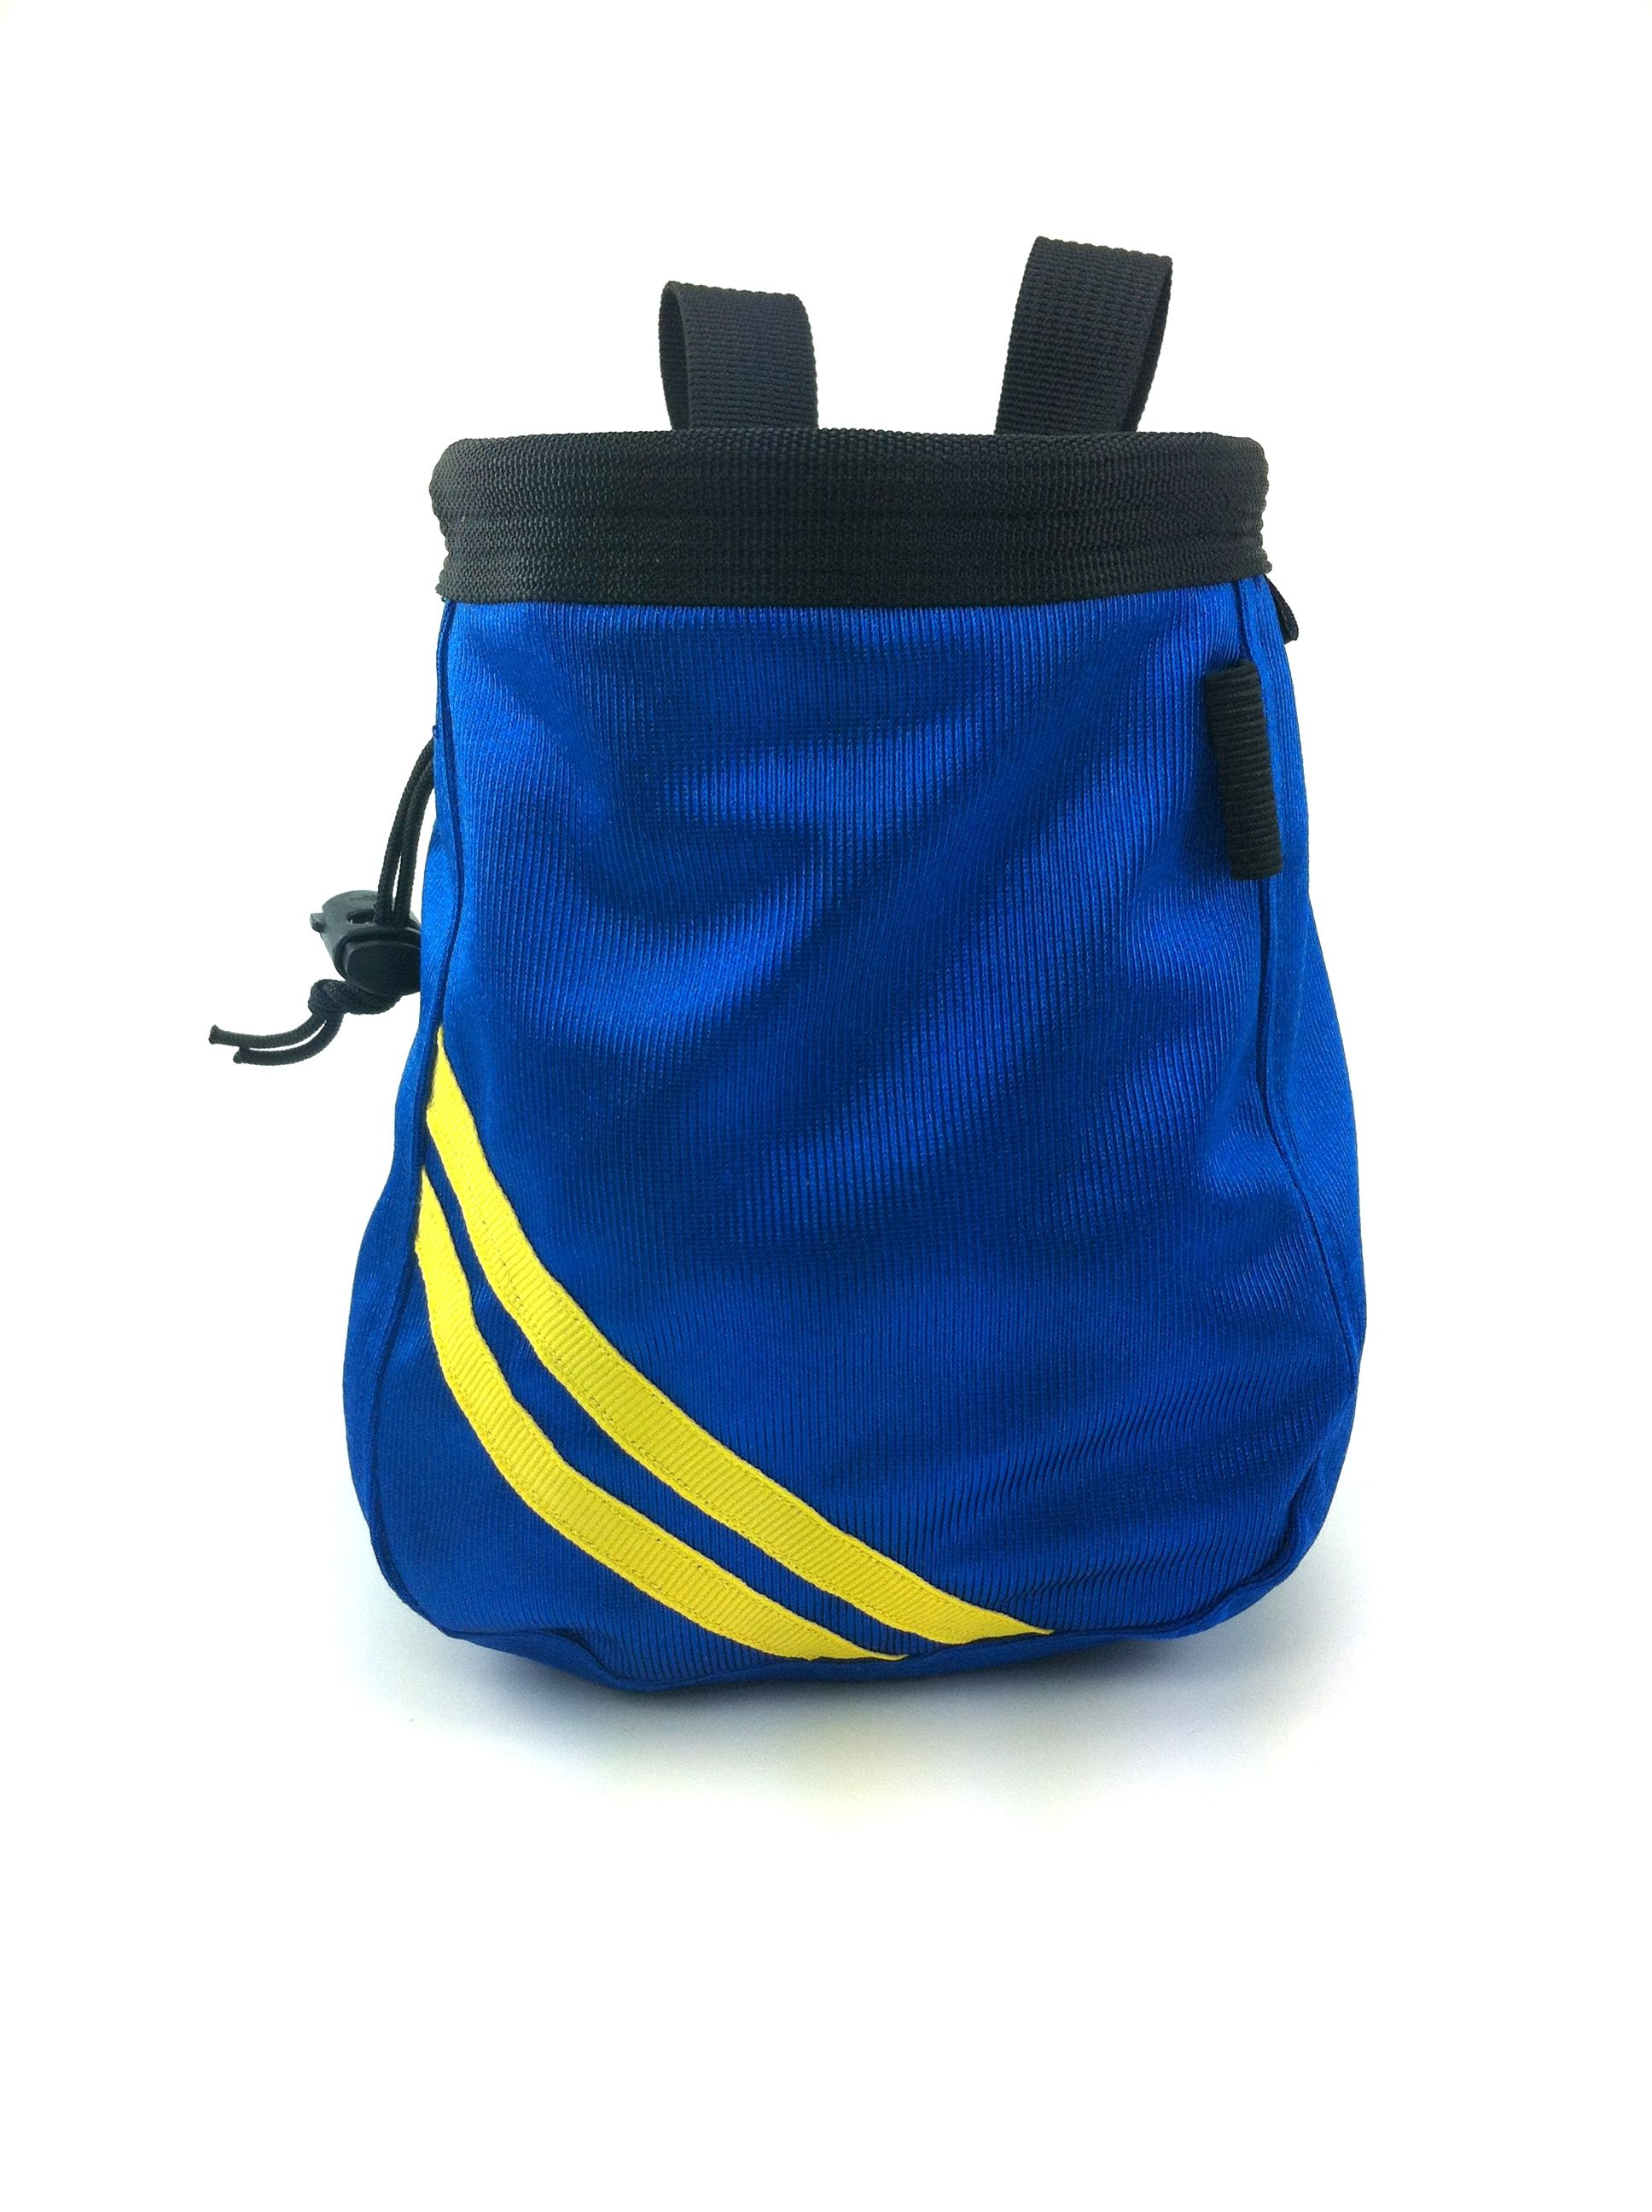 Blue Chalk Bag